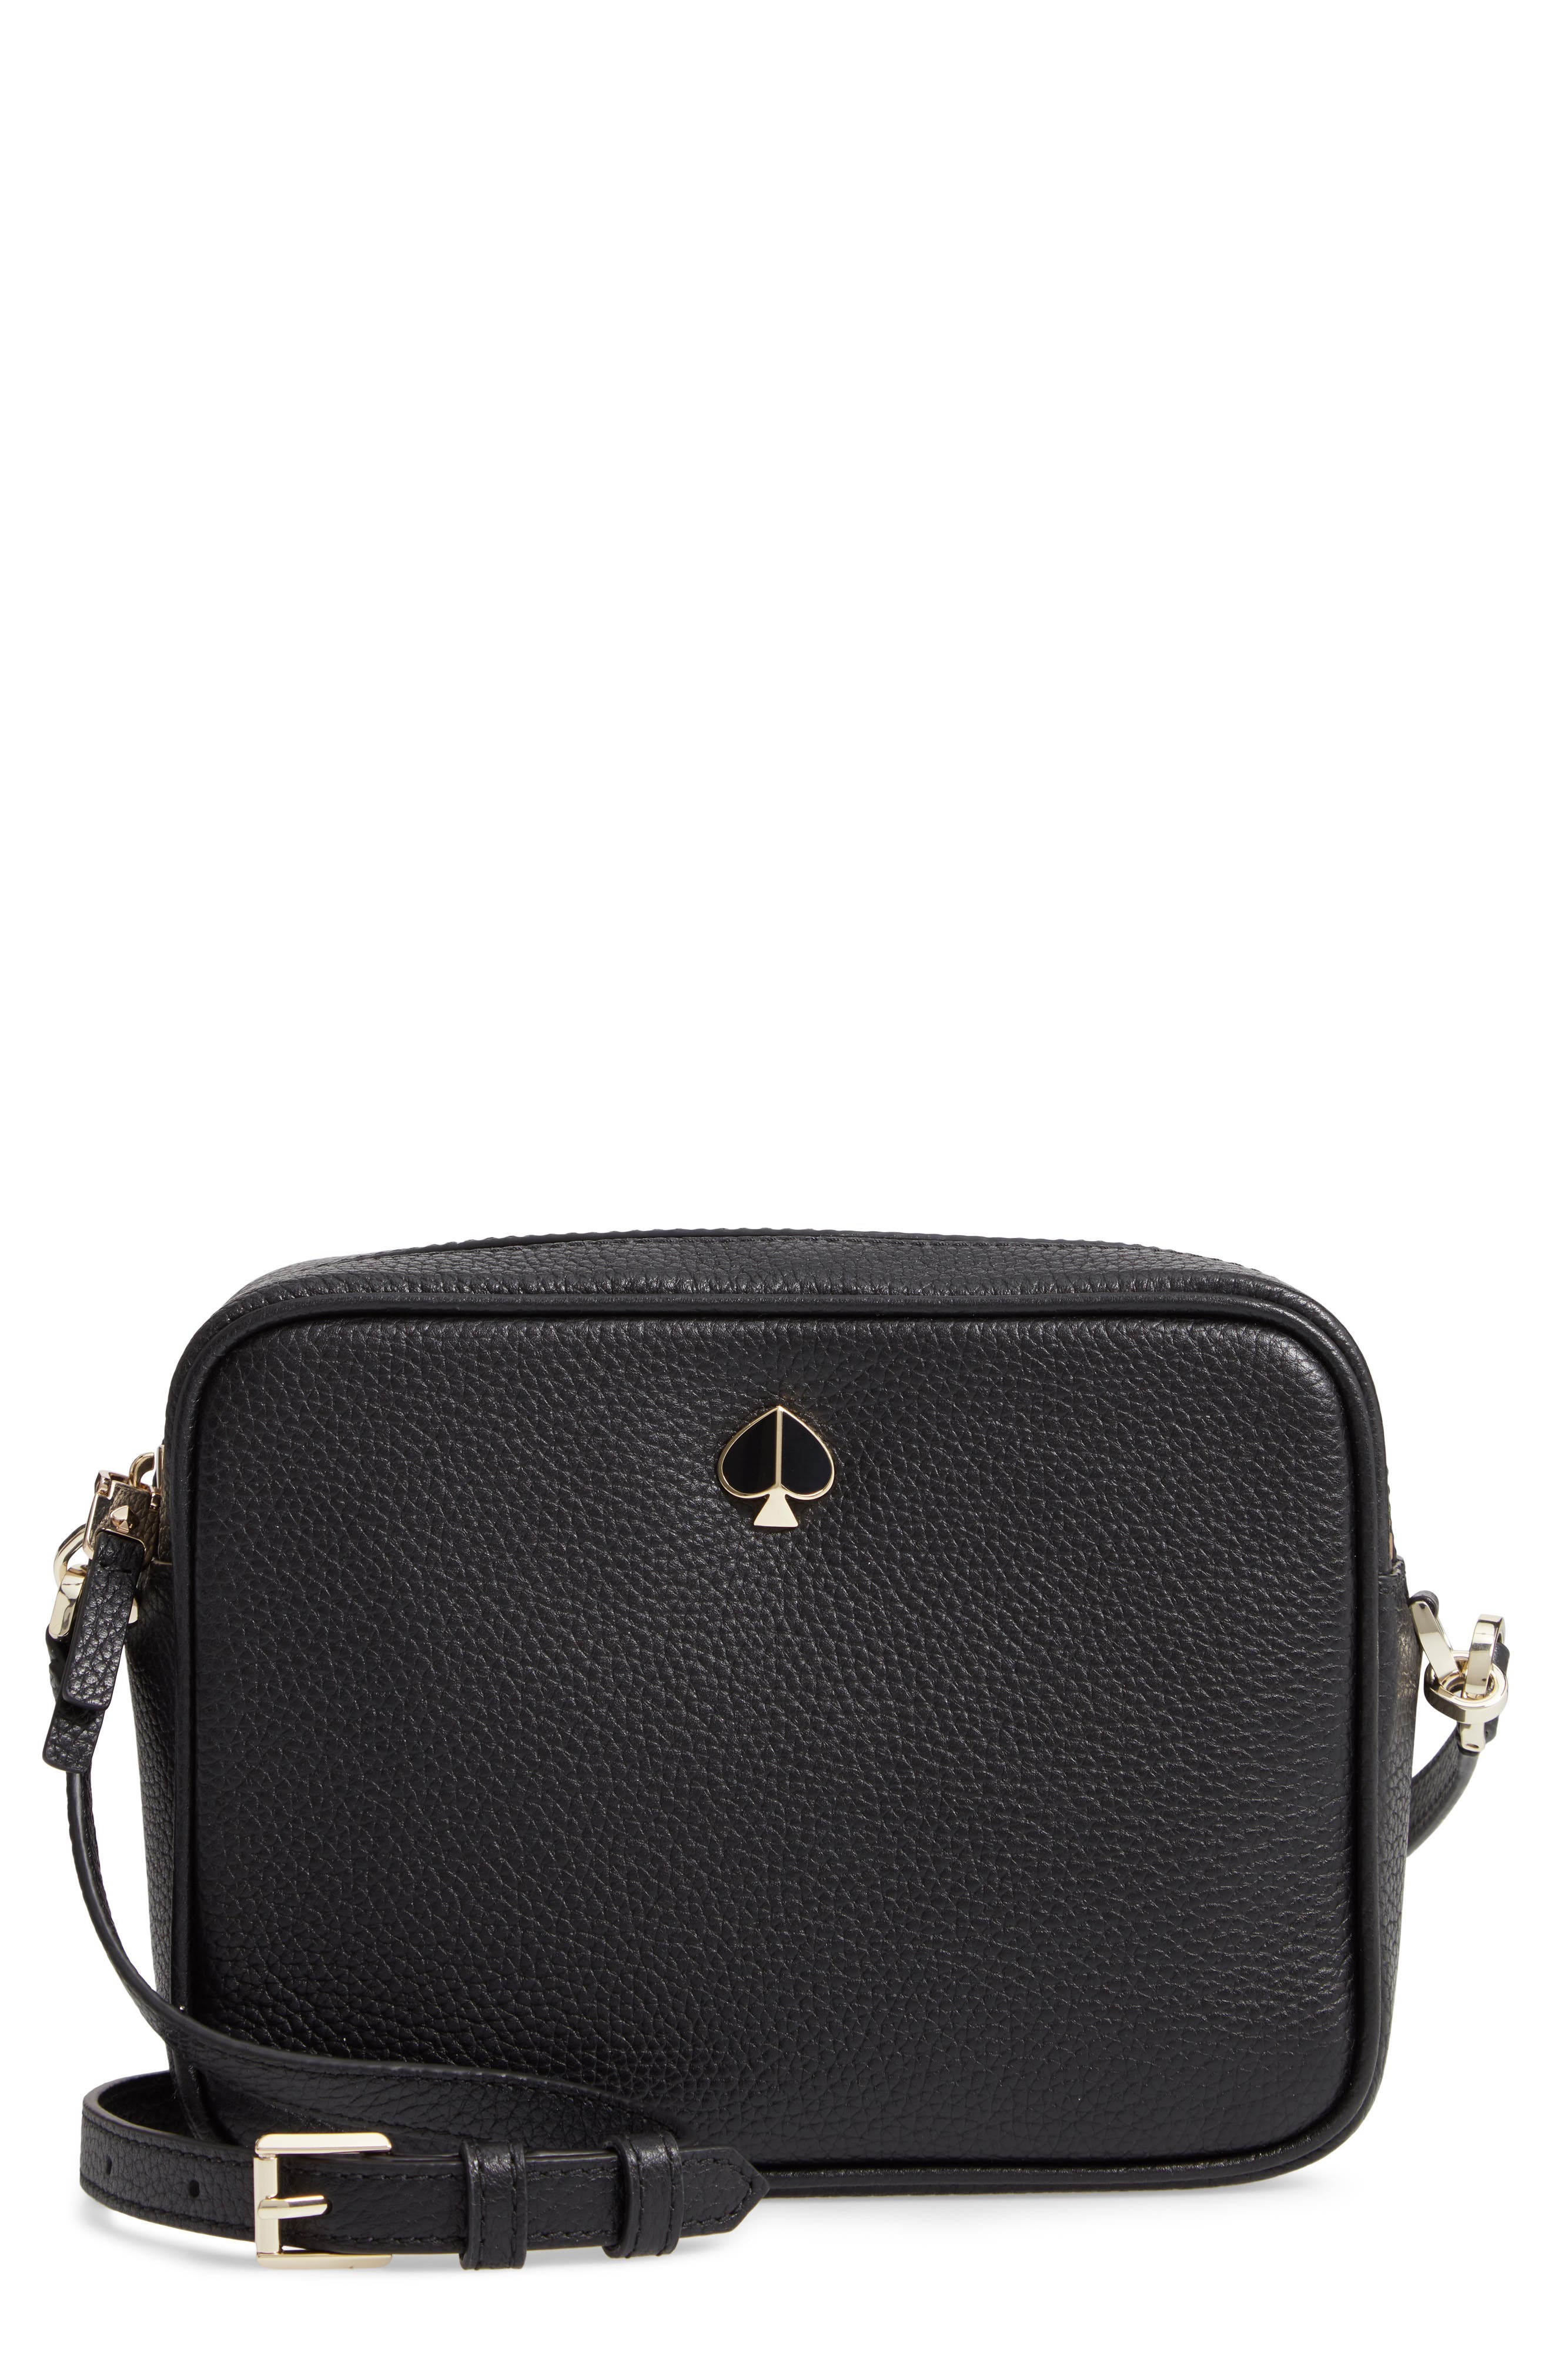 065695bc8ac Women s Crossbody Bags New Arrivals  Clothing, Shoes   Beauty   Nordstrom